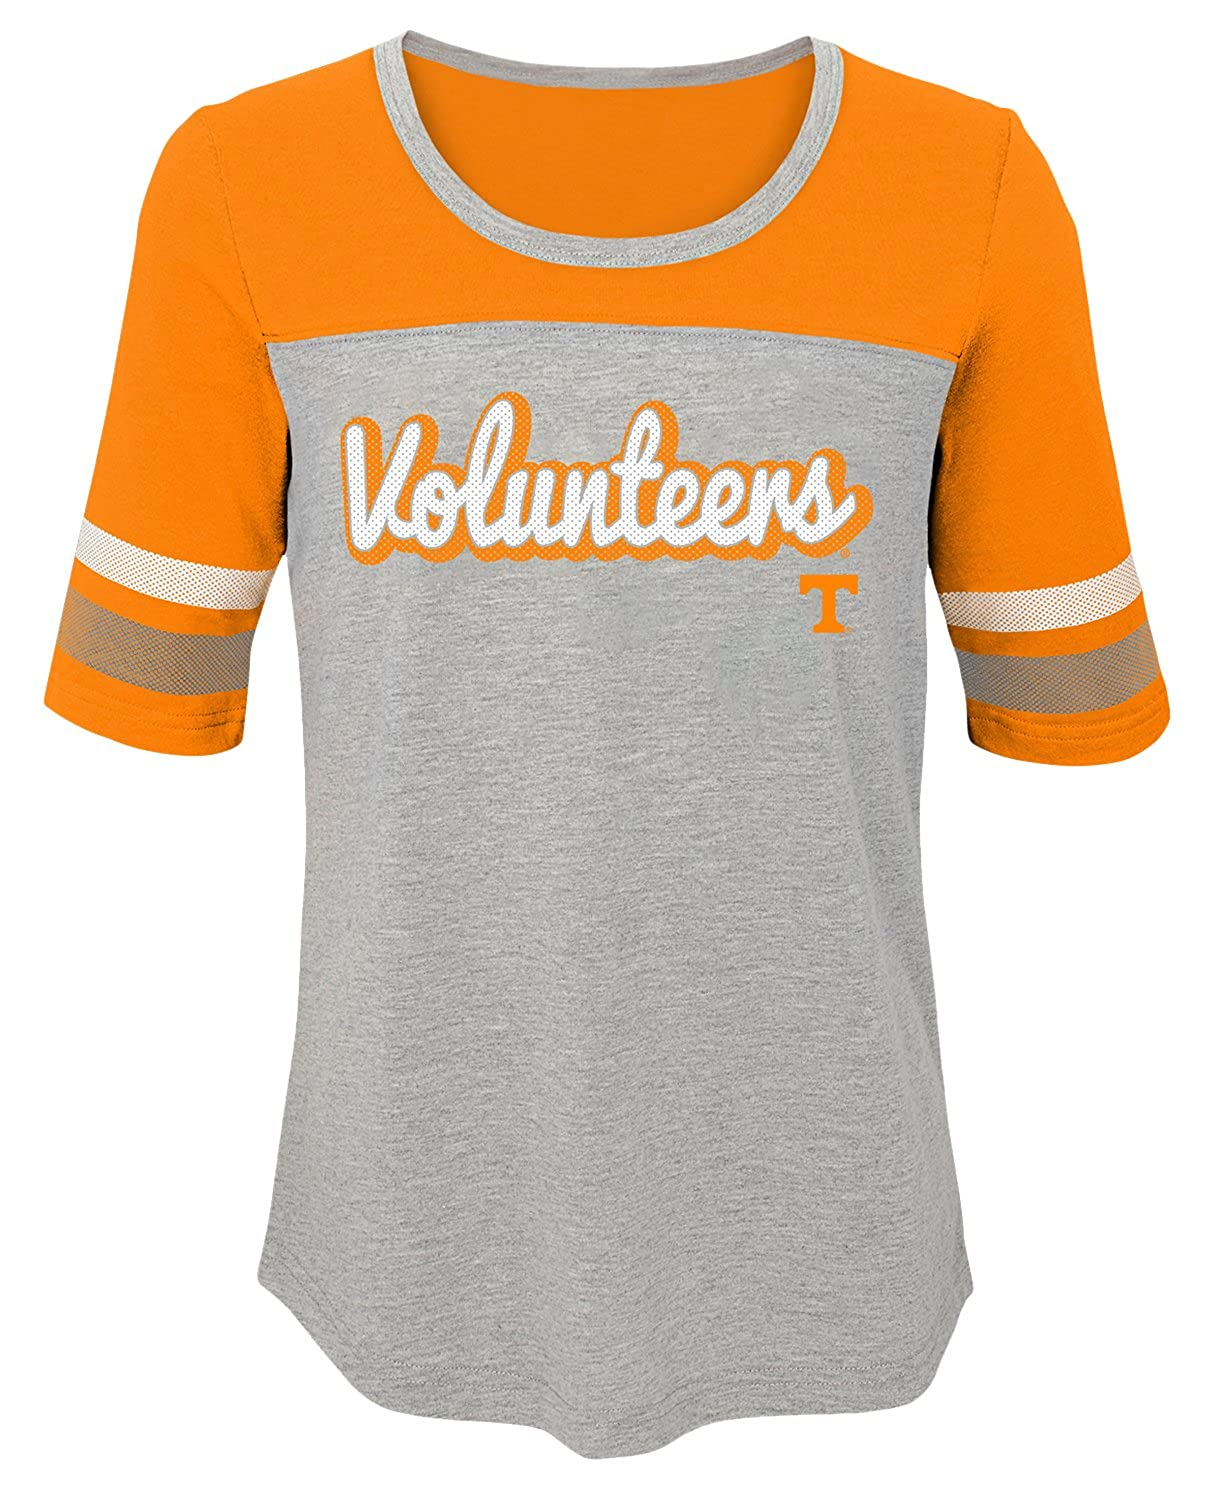 Youth Large Tennessee Orange 14 NCAA by Outerstuff NCAA Tennessee Volunteers Youth Girls Fan-Tastic Short Sleeve Tee